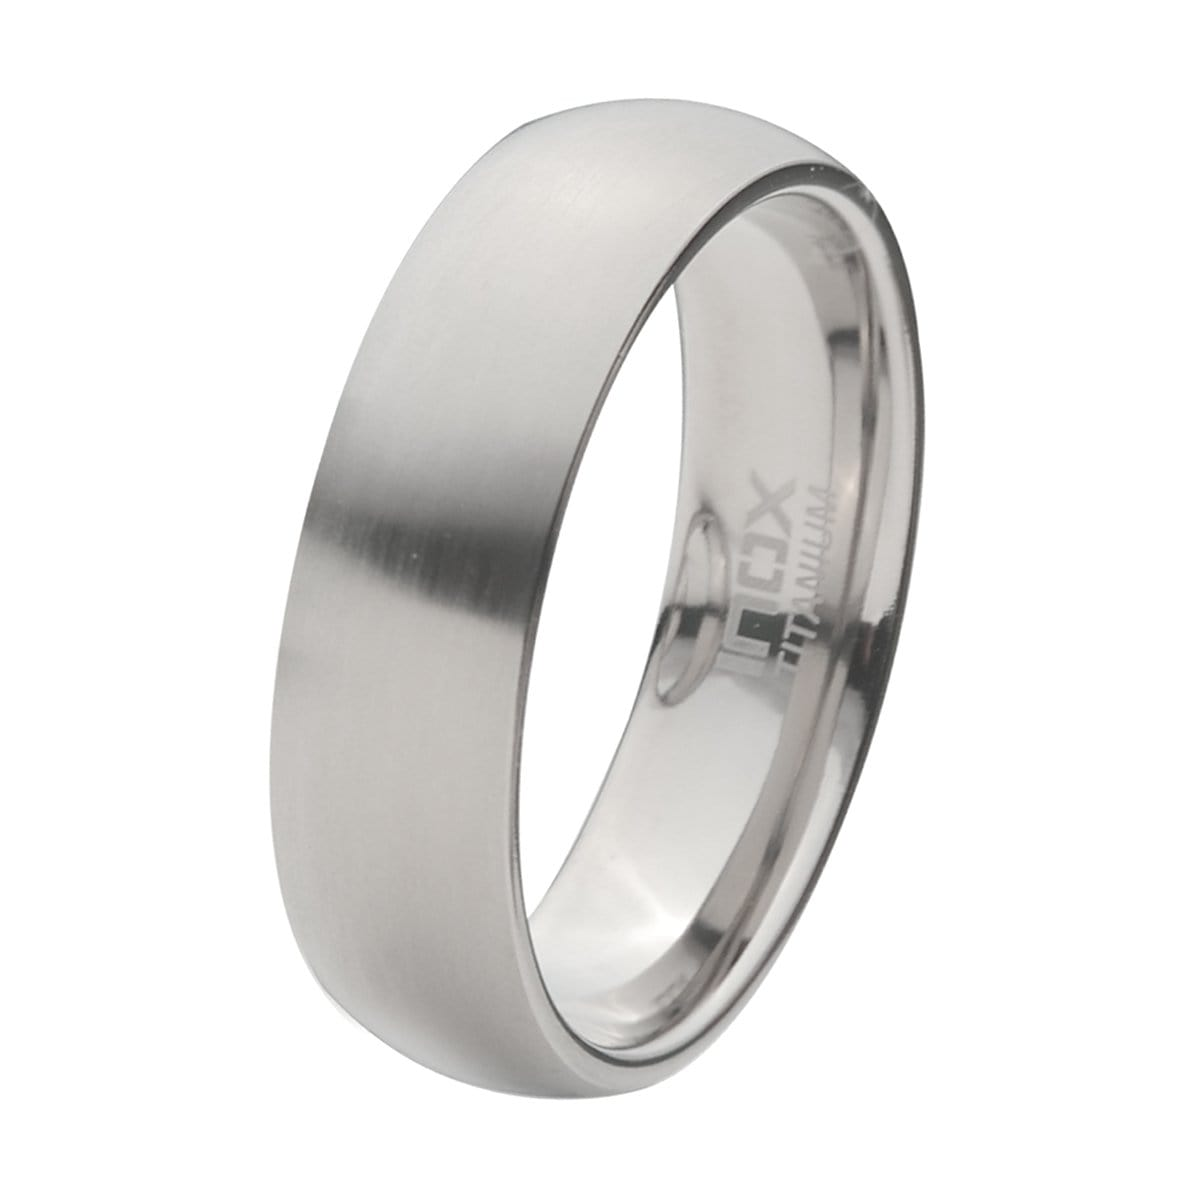 Silver Titanium 7mm Classic Matte Finish Band Ring Rings